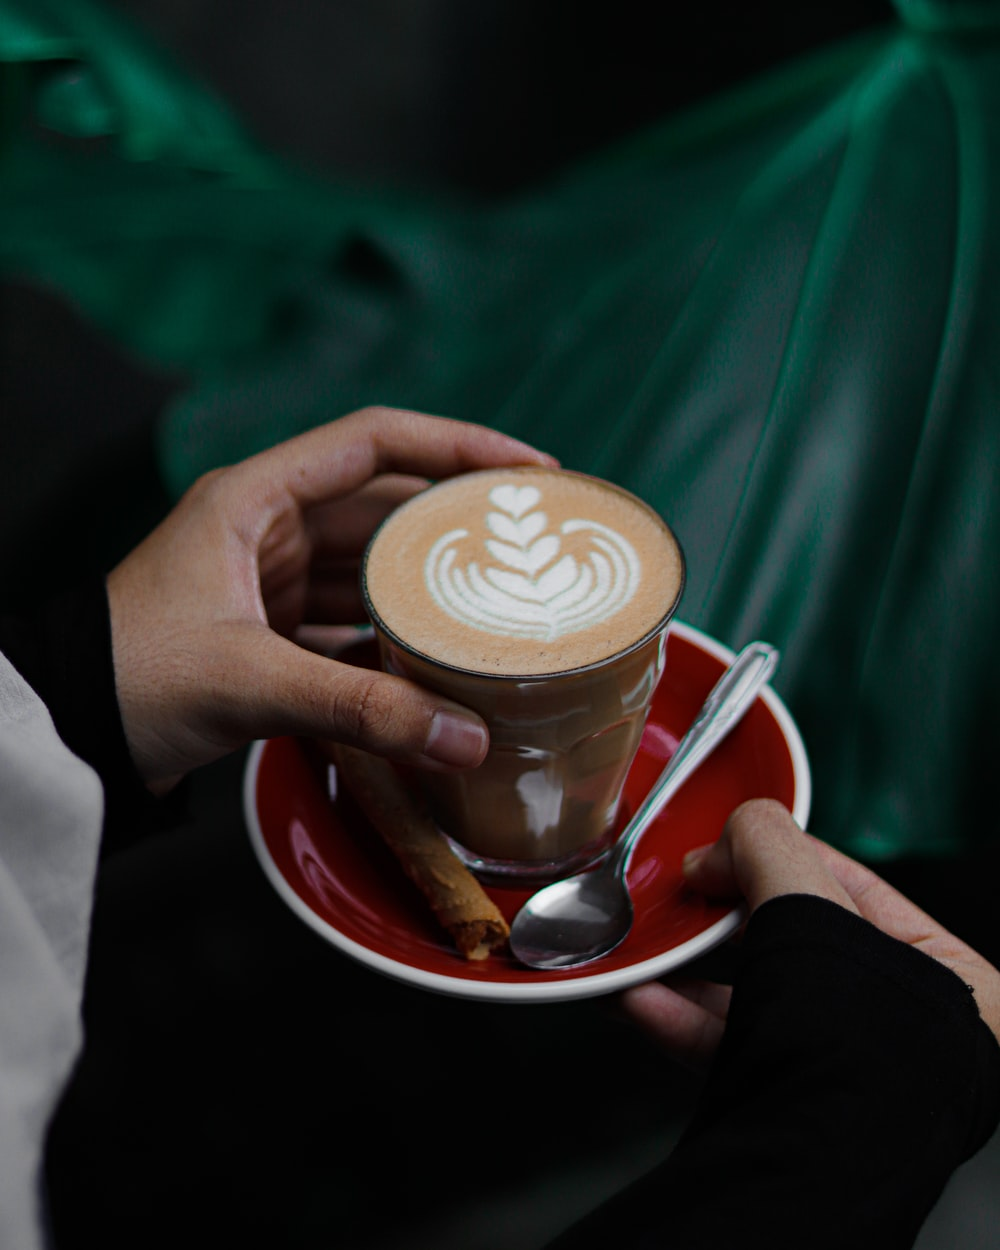 person holding white ceramic mug with coffee